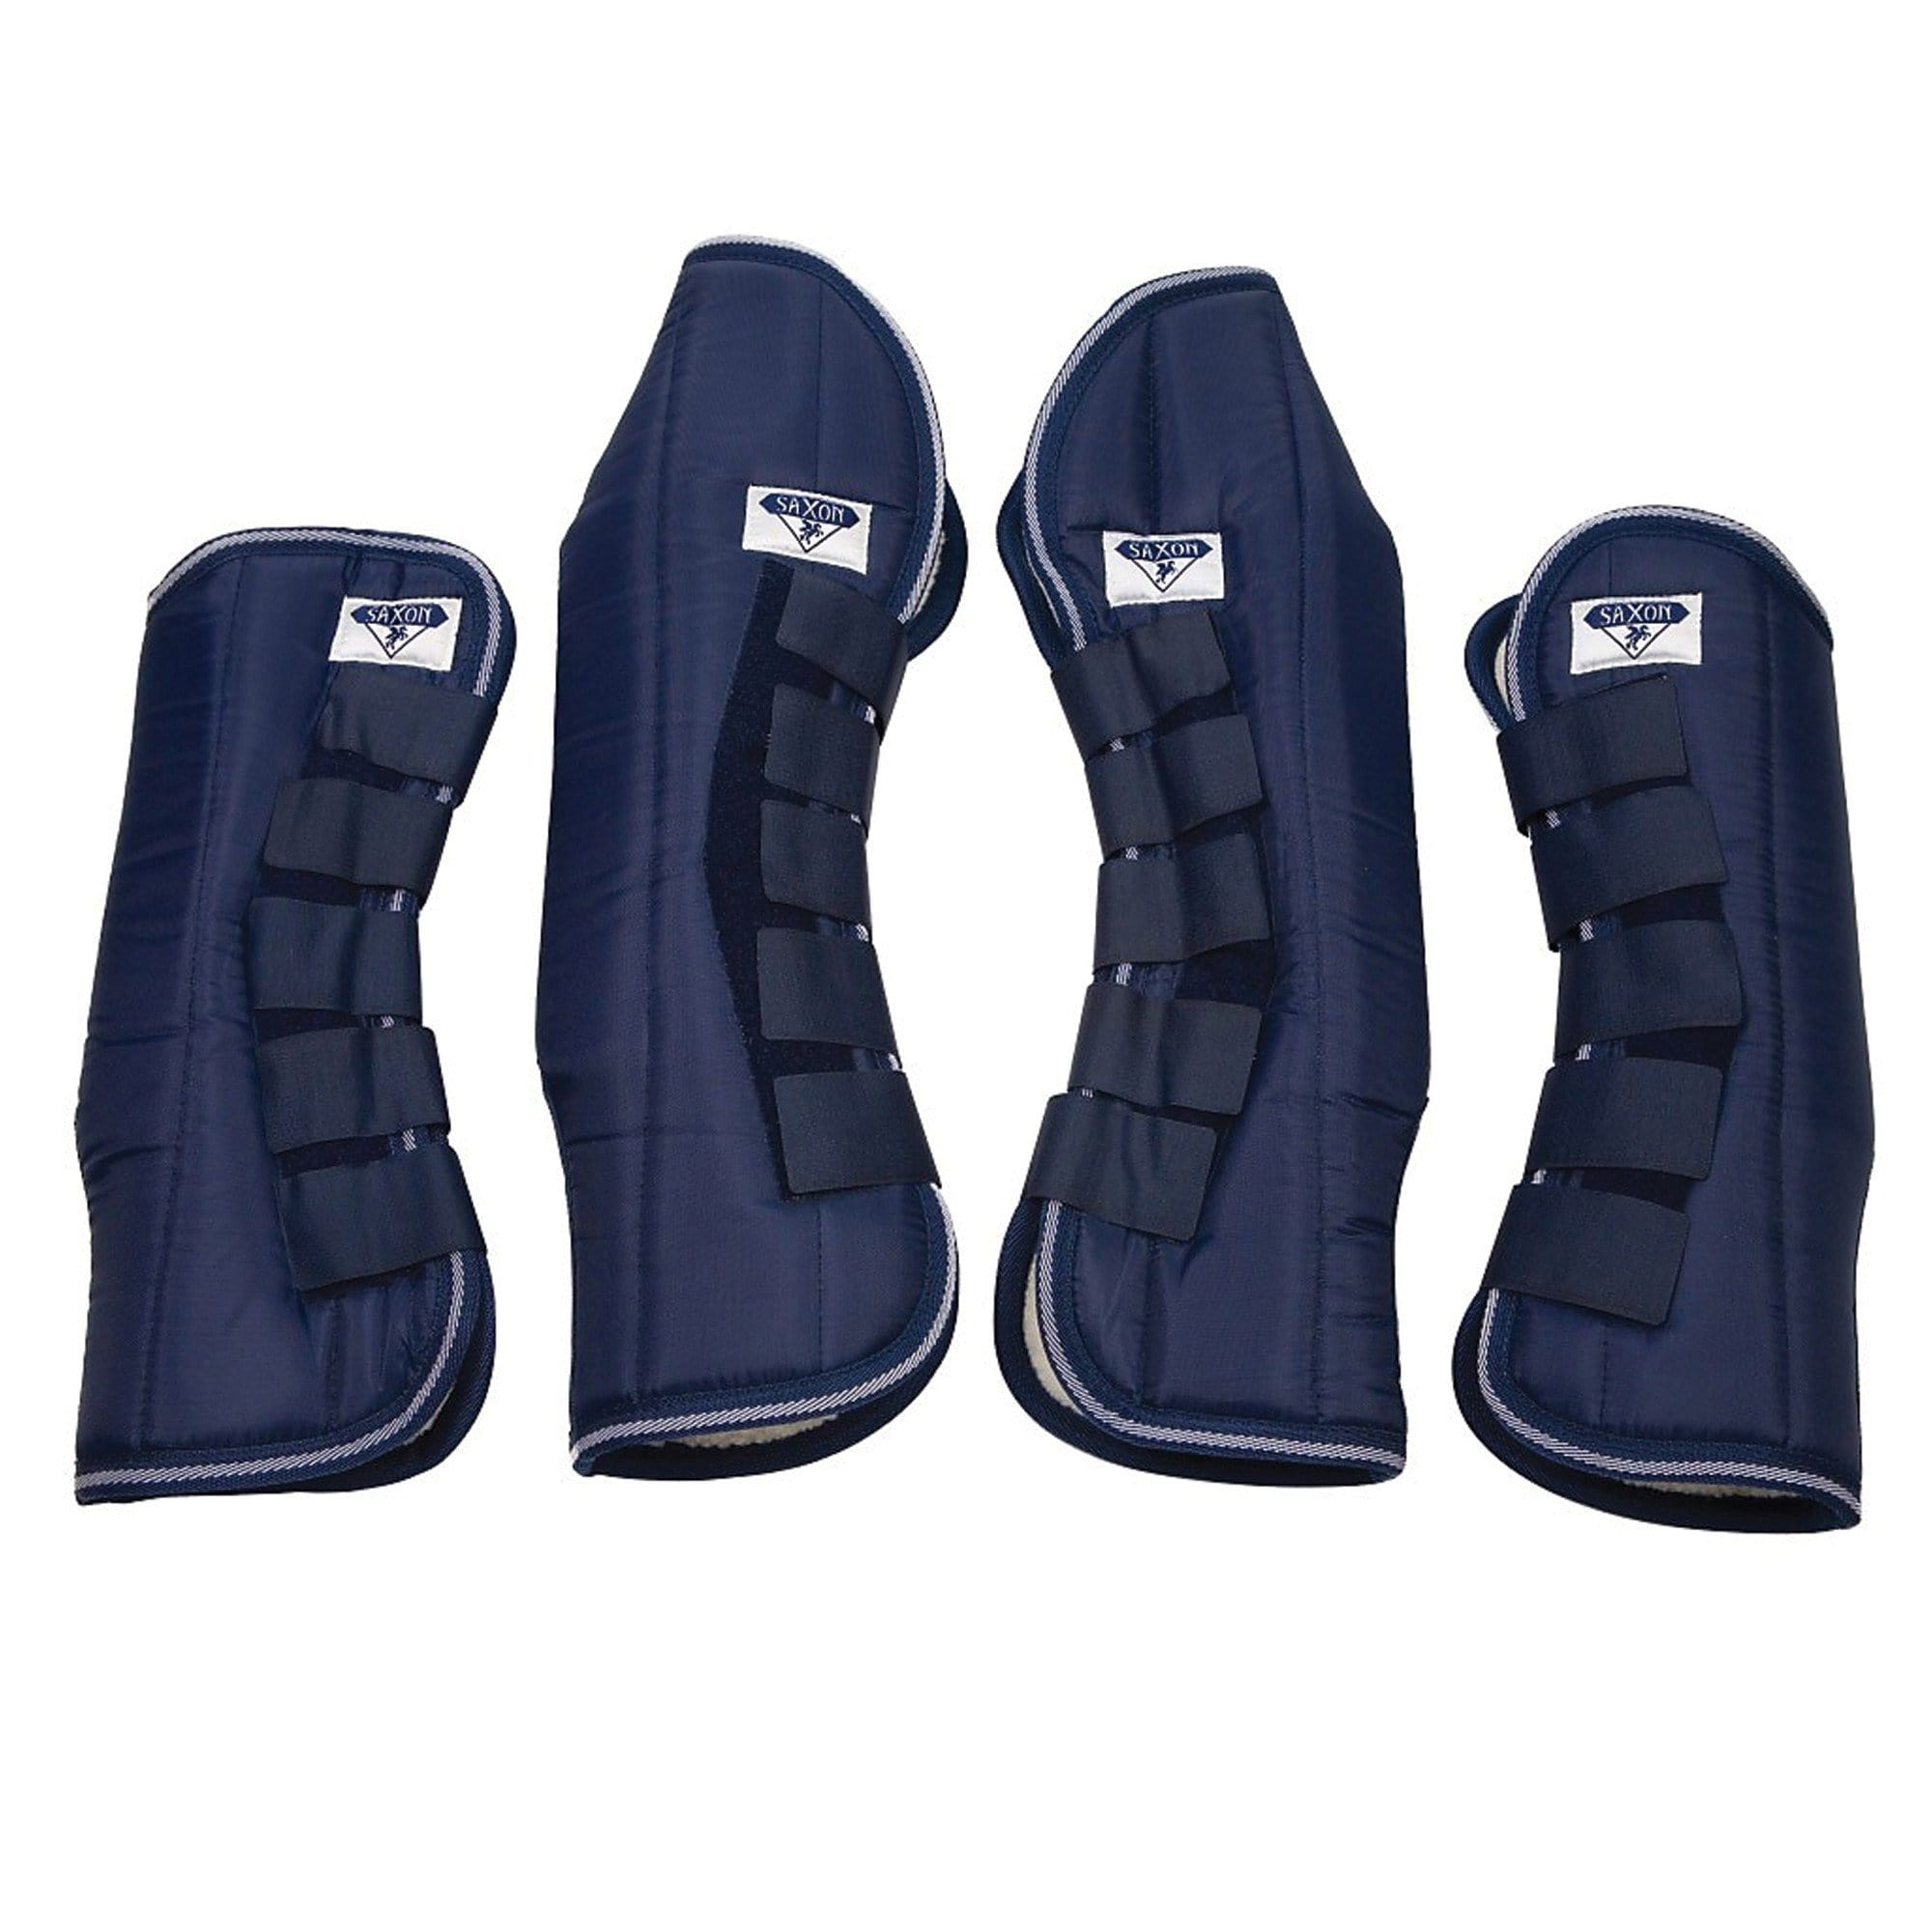 Saxon Travel Boots Navy - EQUUS